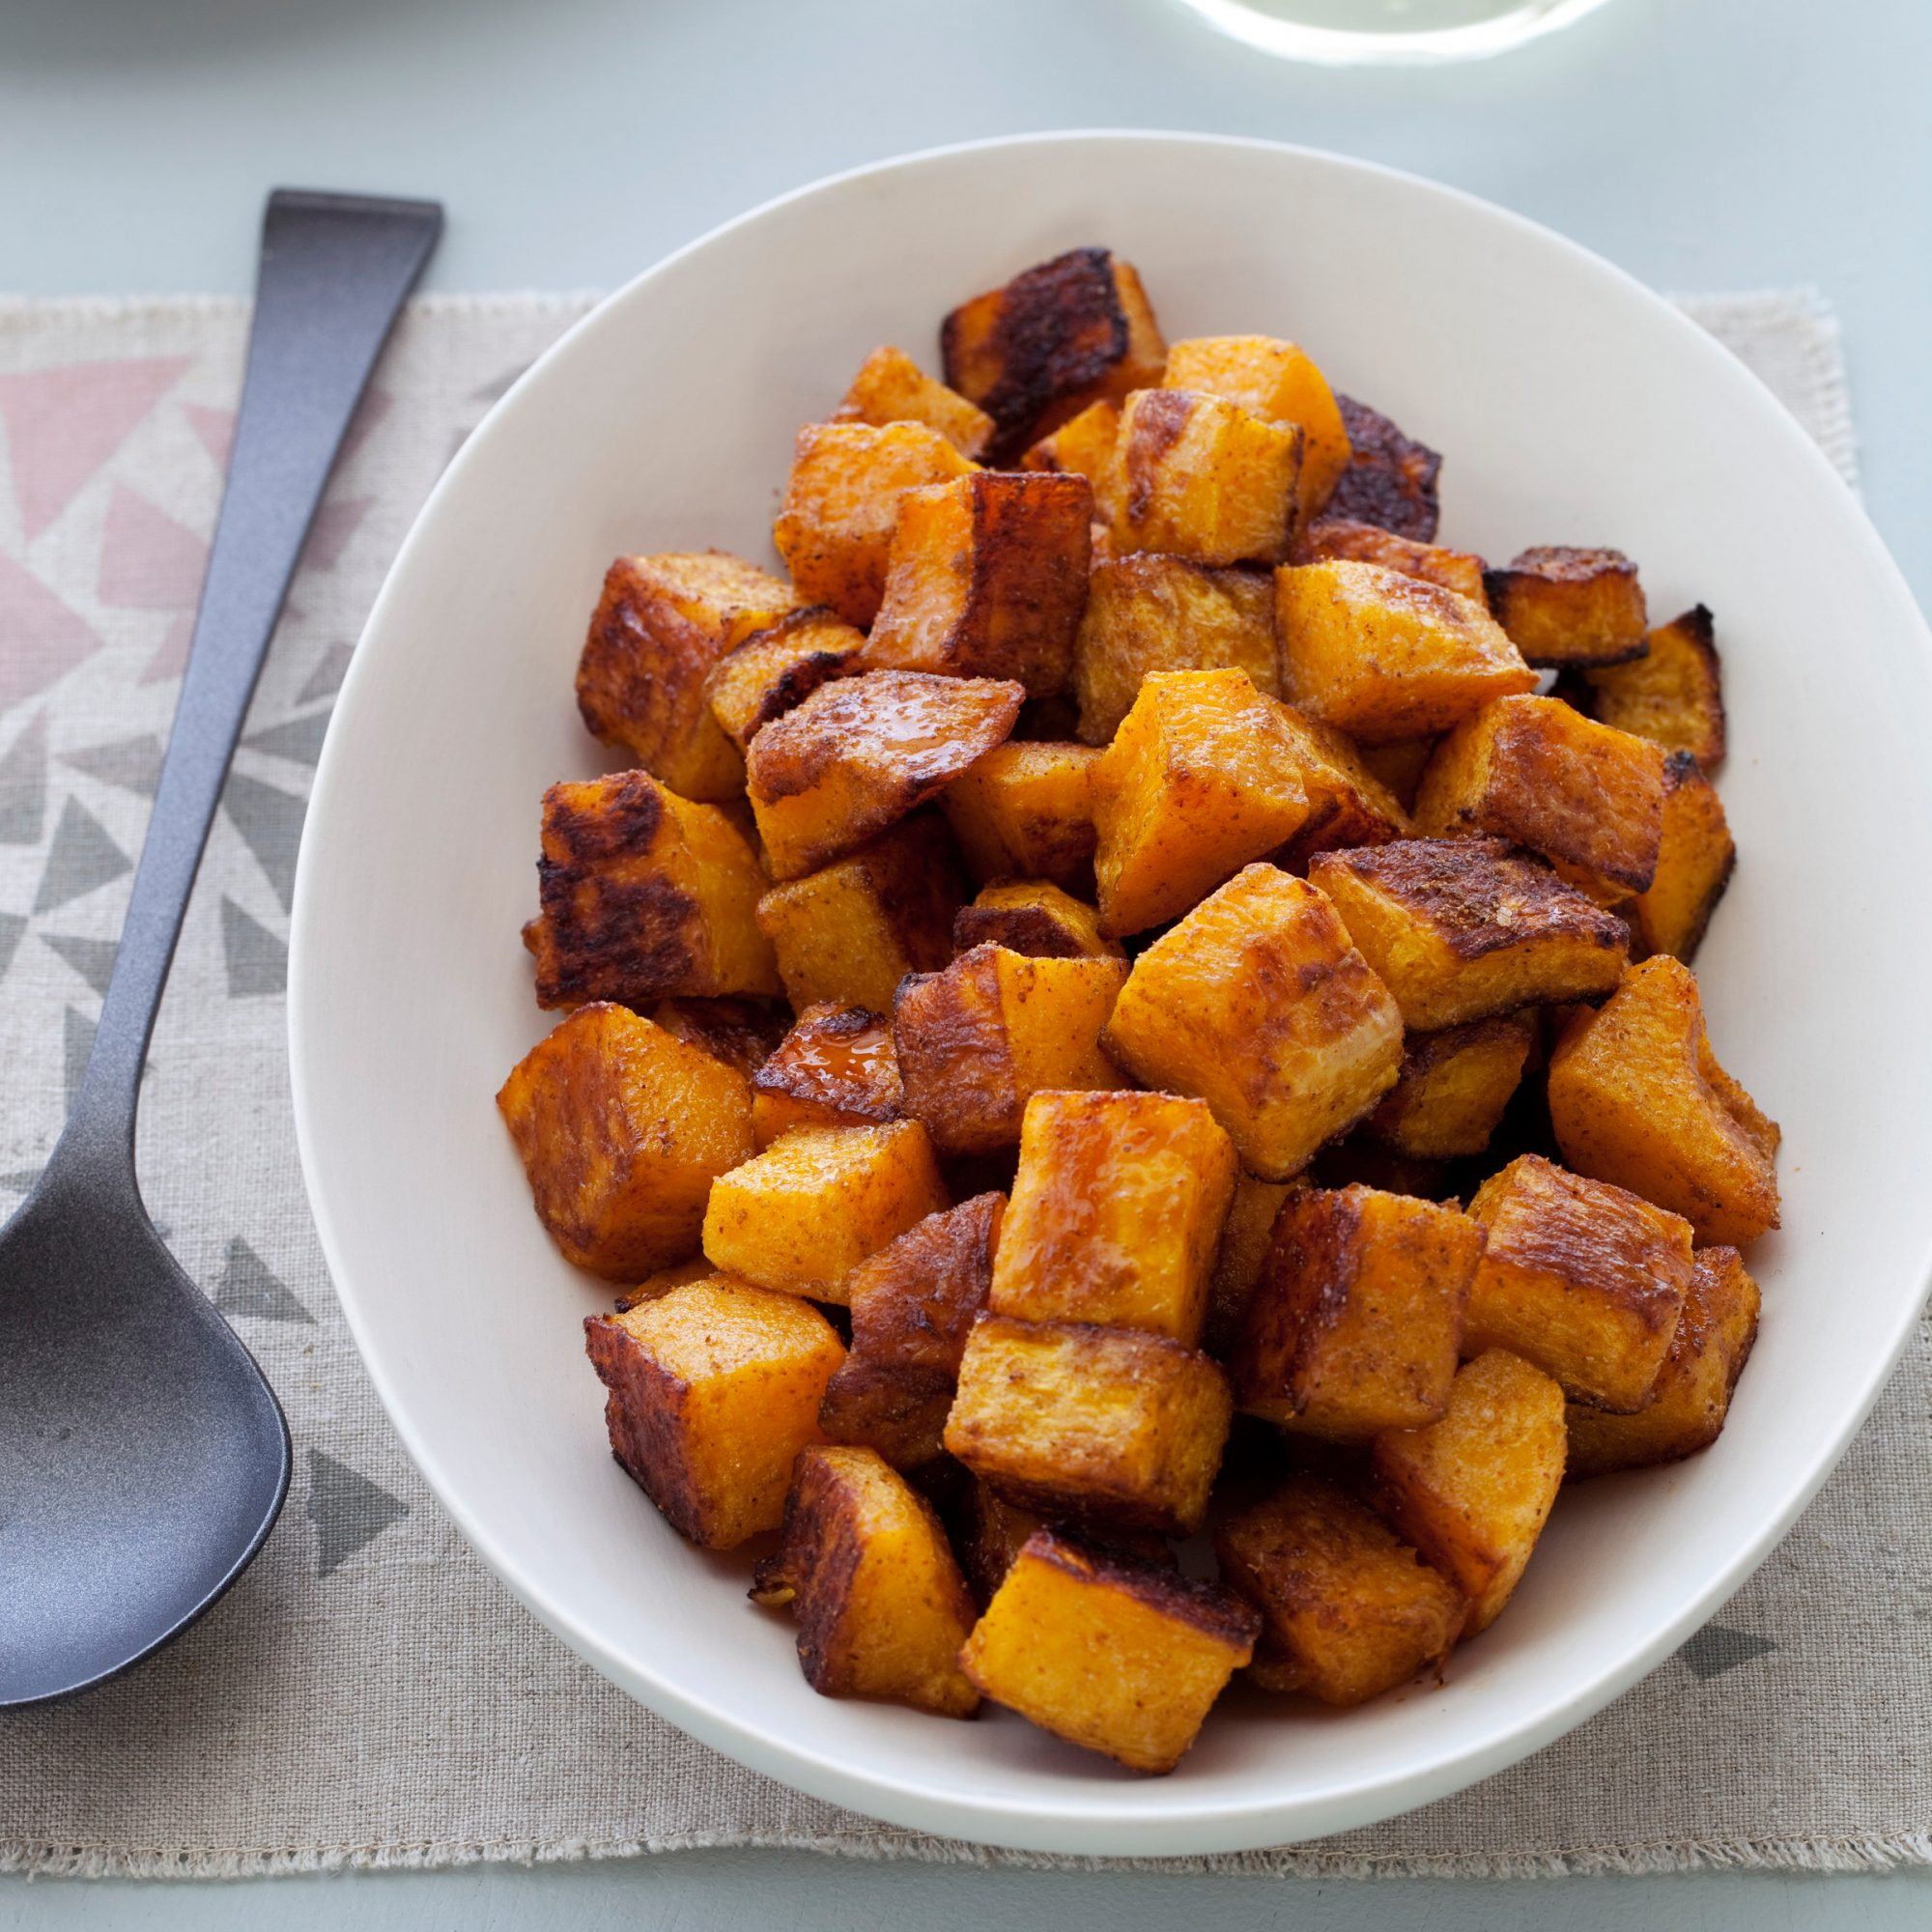 HD-201203-r-blogger-spice-roasted-butternut-squash.jpg